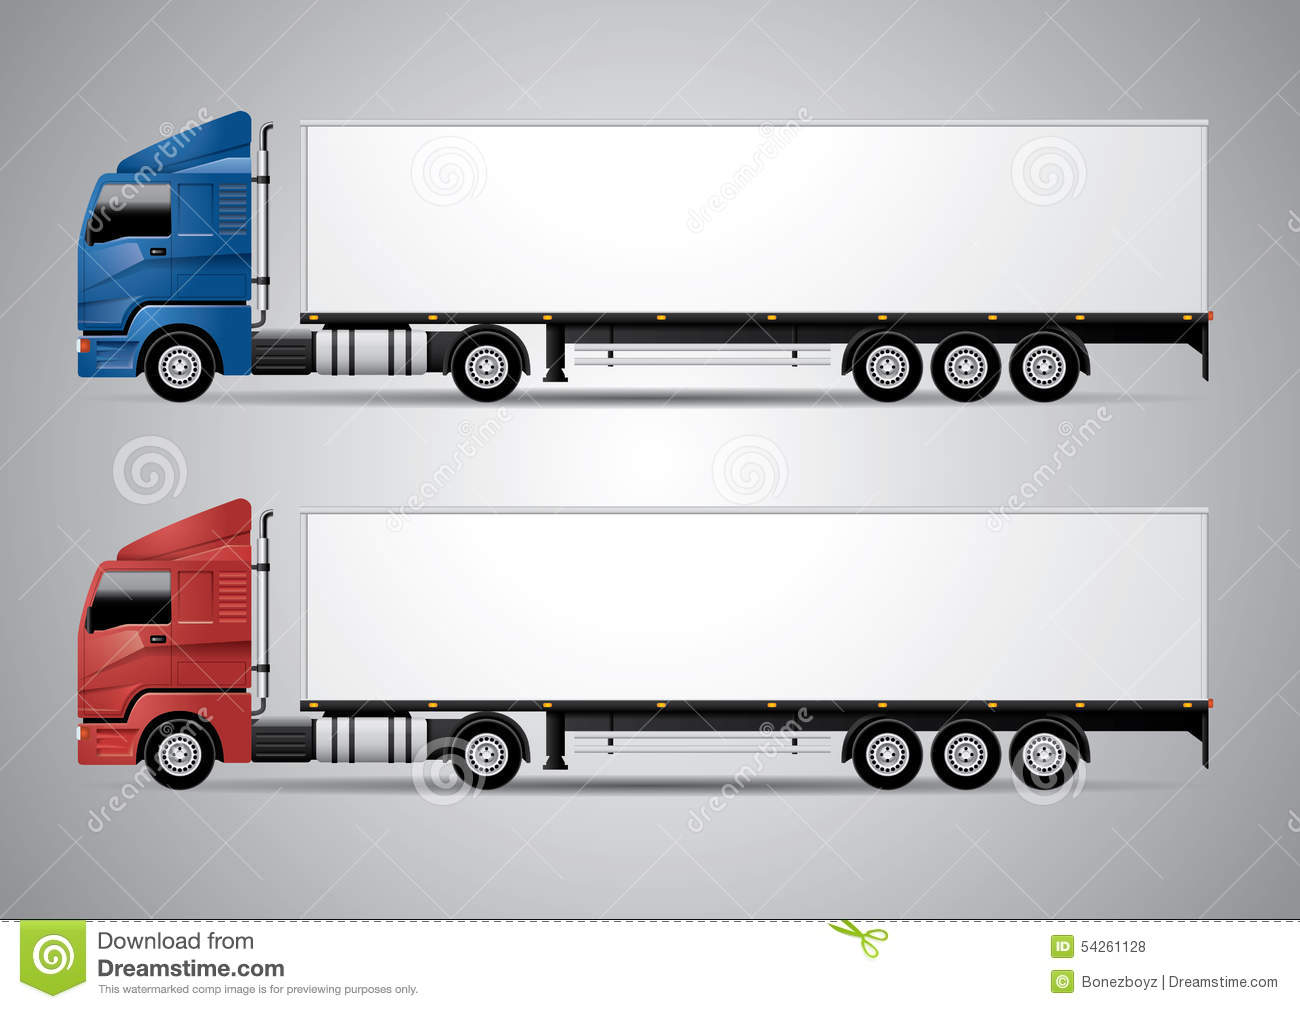 3030 35559 besides Sand Blasting Tractor Trailers furthermore Trailer Axle Alignment Trailer Tire Wear as well Dallas Vehicle Wraps further Royalty Free Stock Image Truck Front Isolated White Image2142556. on semi trailor